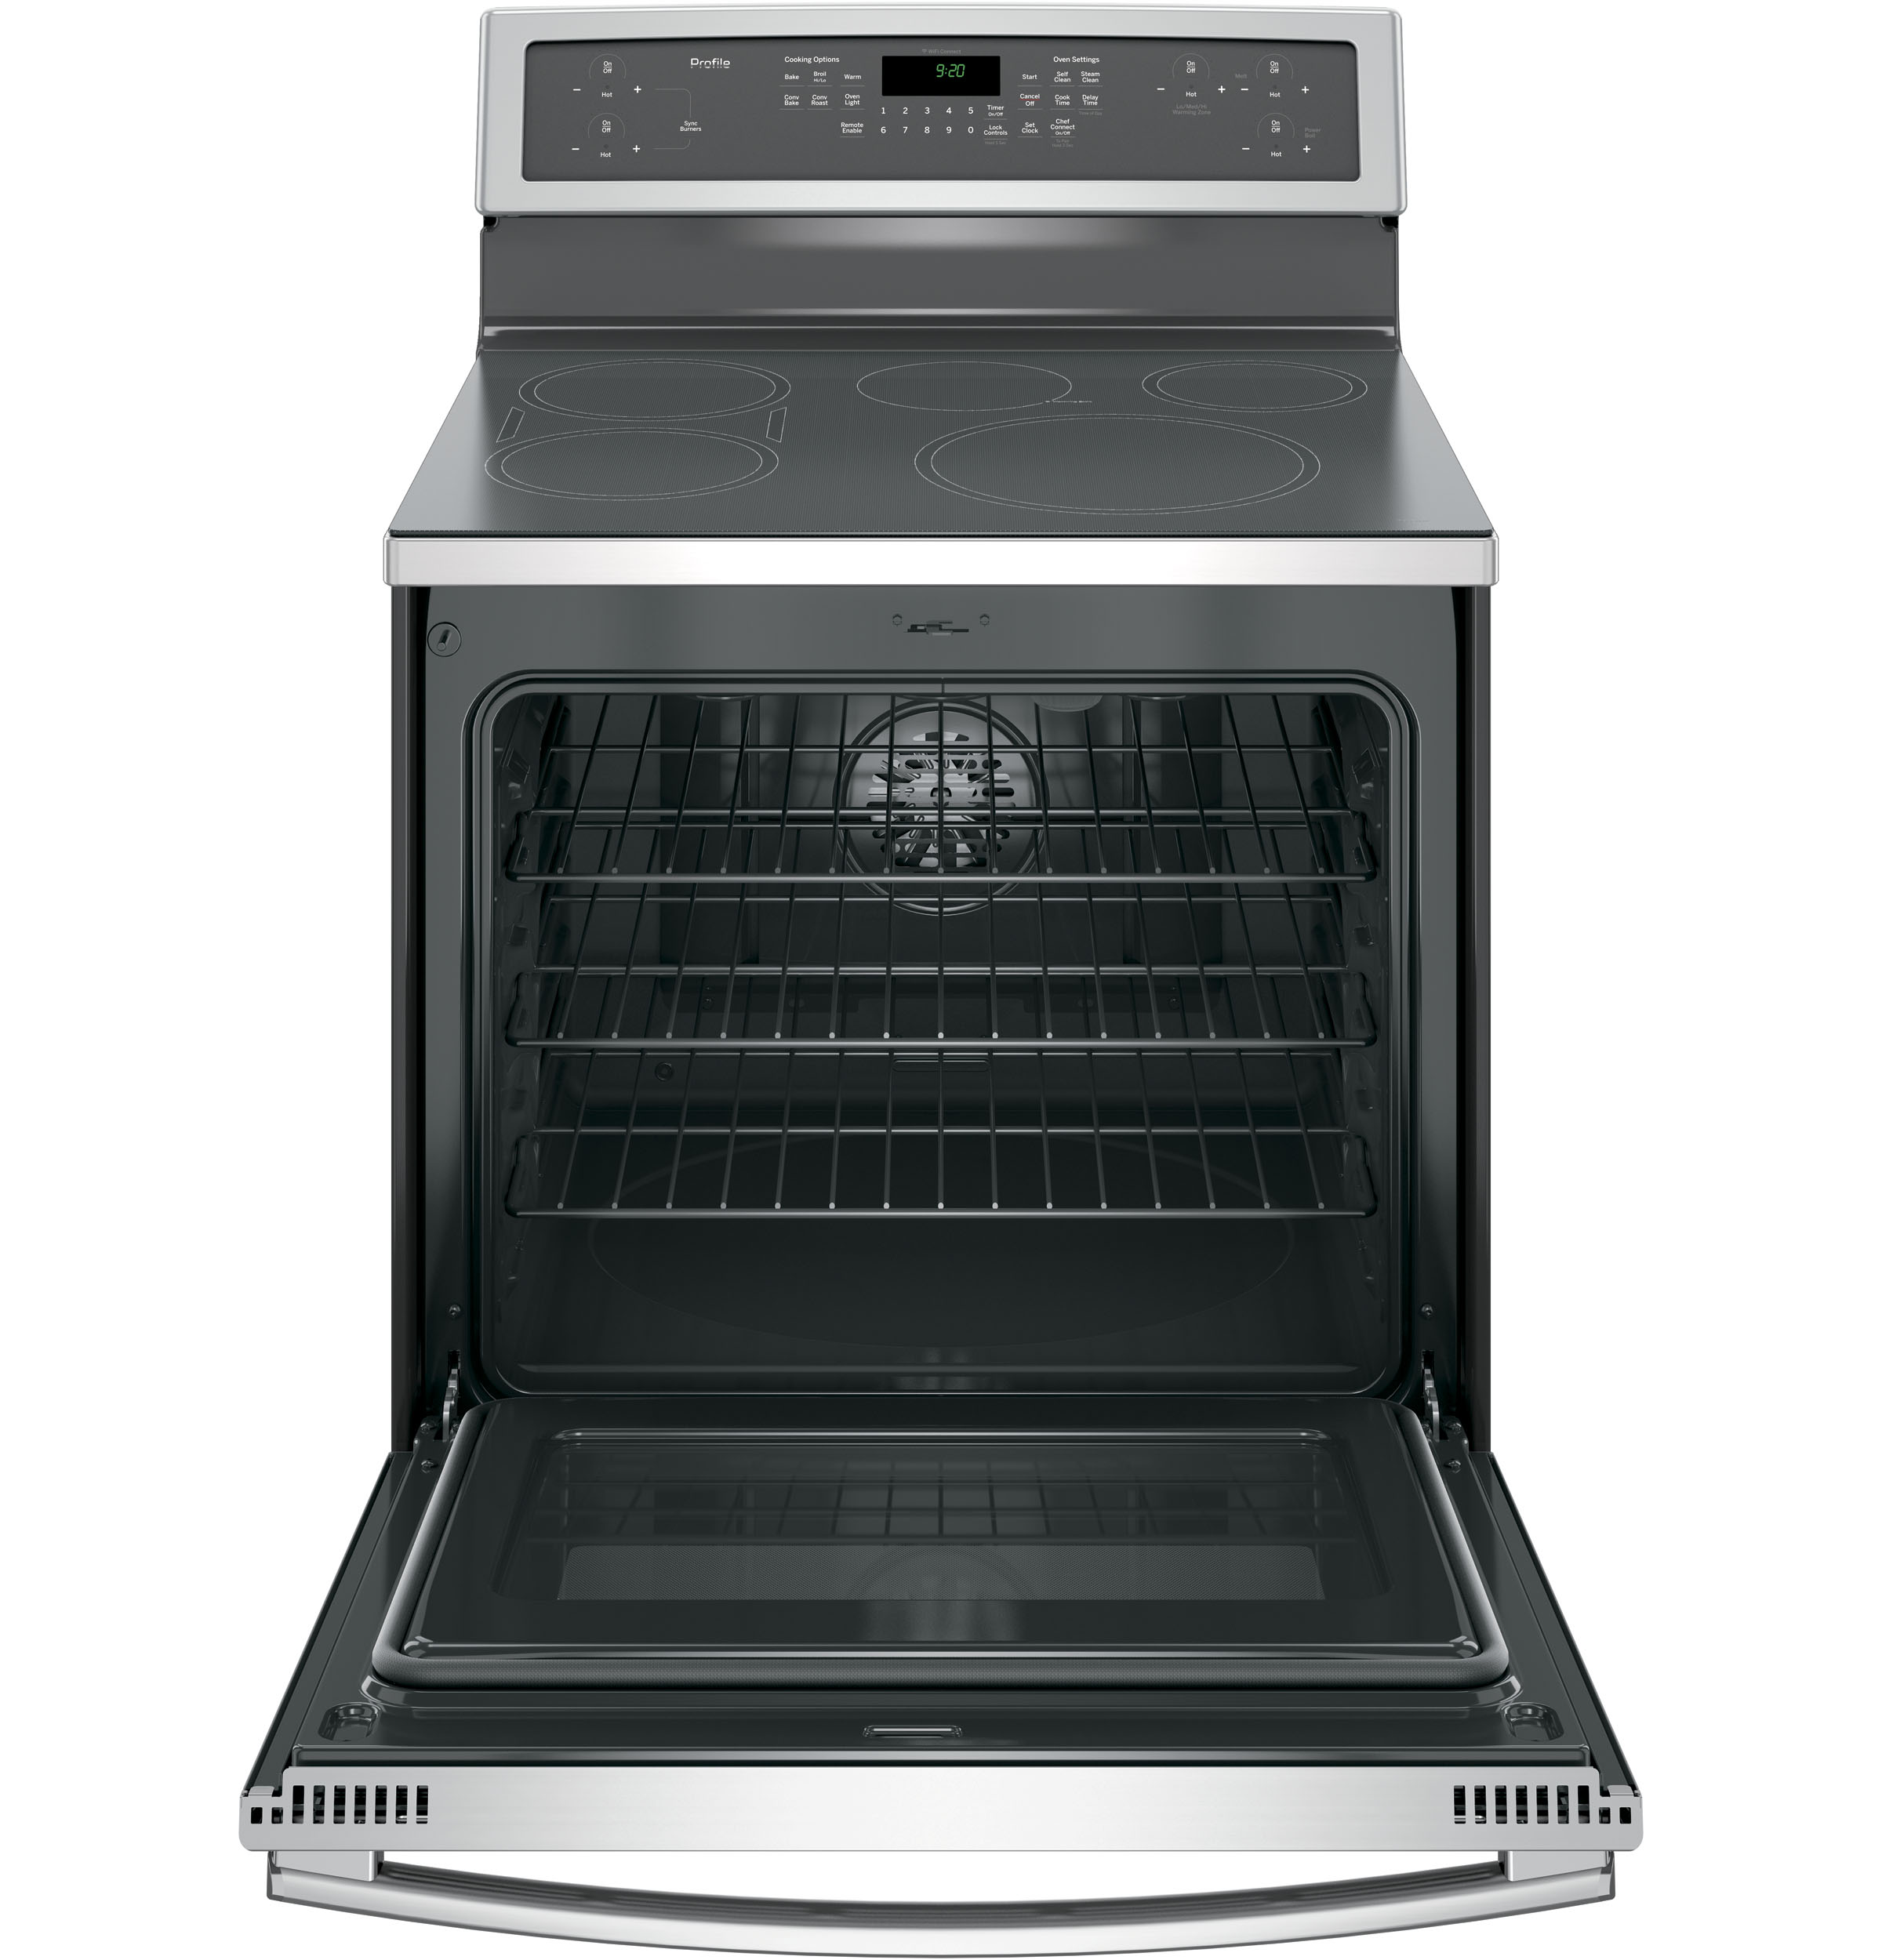 GE Profile PHB920SJSS 5.3 cu. ft. Electric Induction Range - Stainless Steel